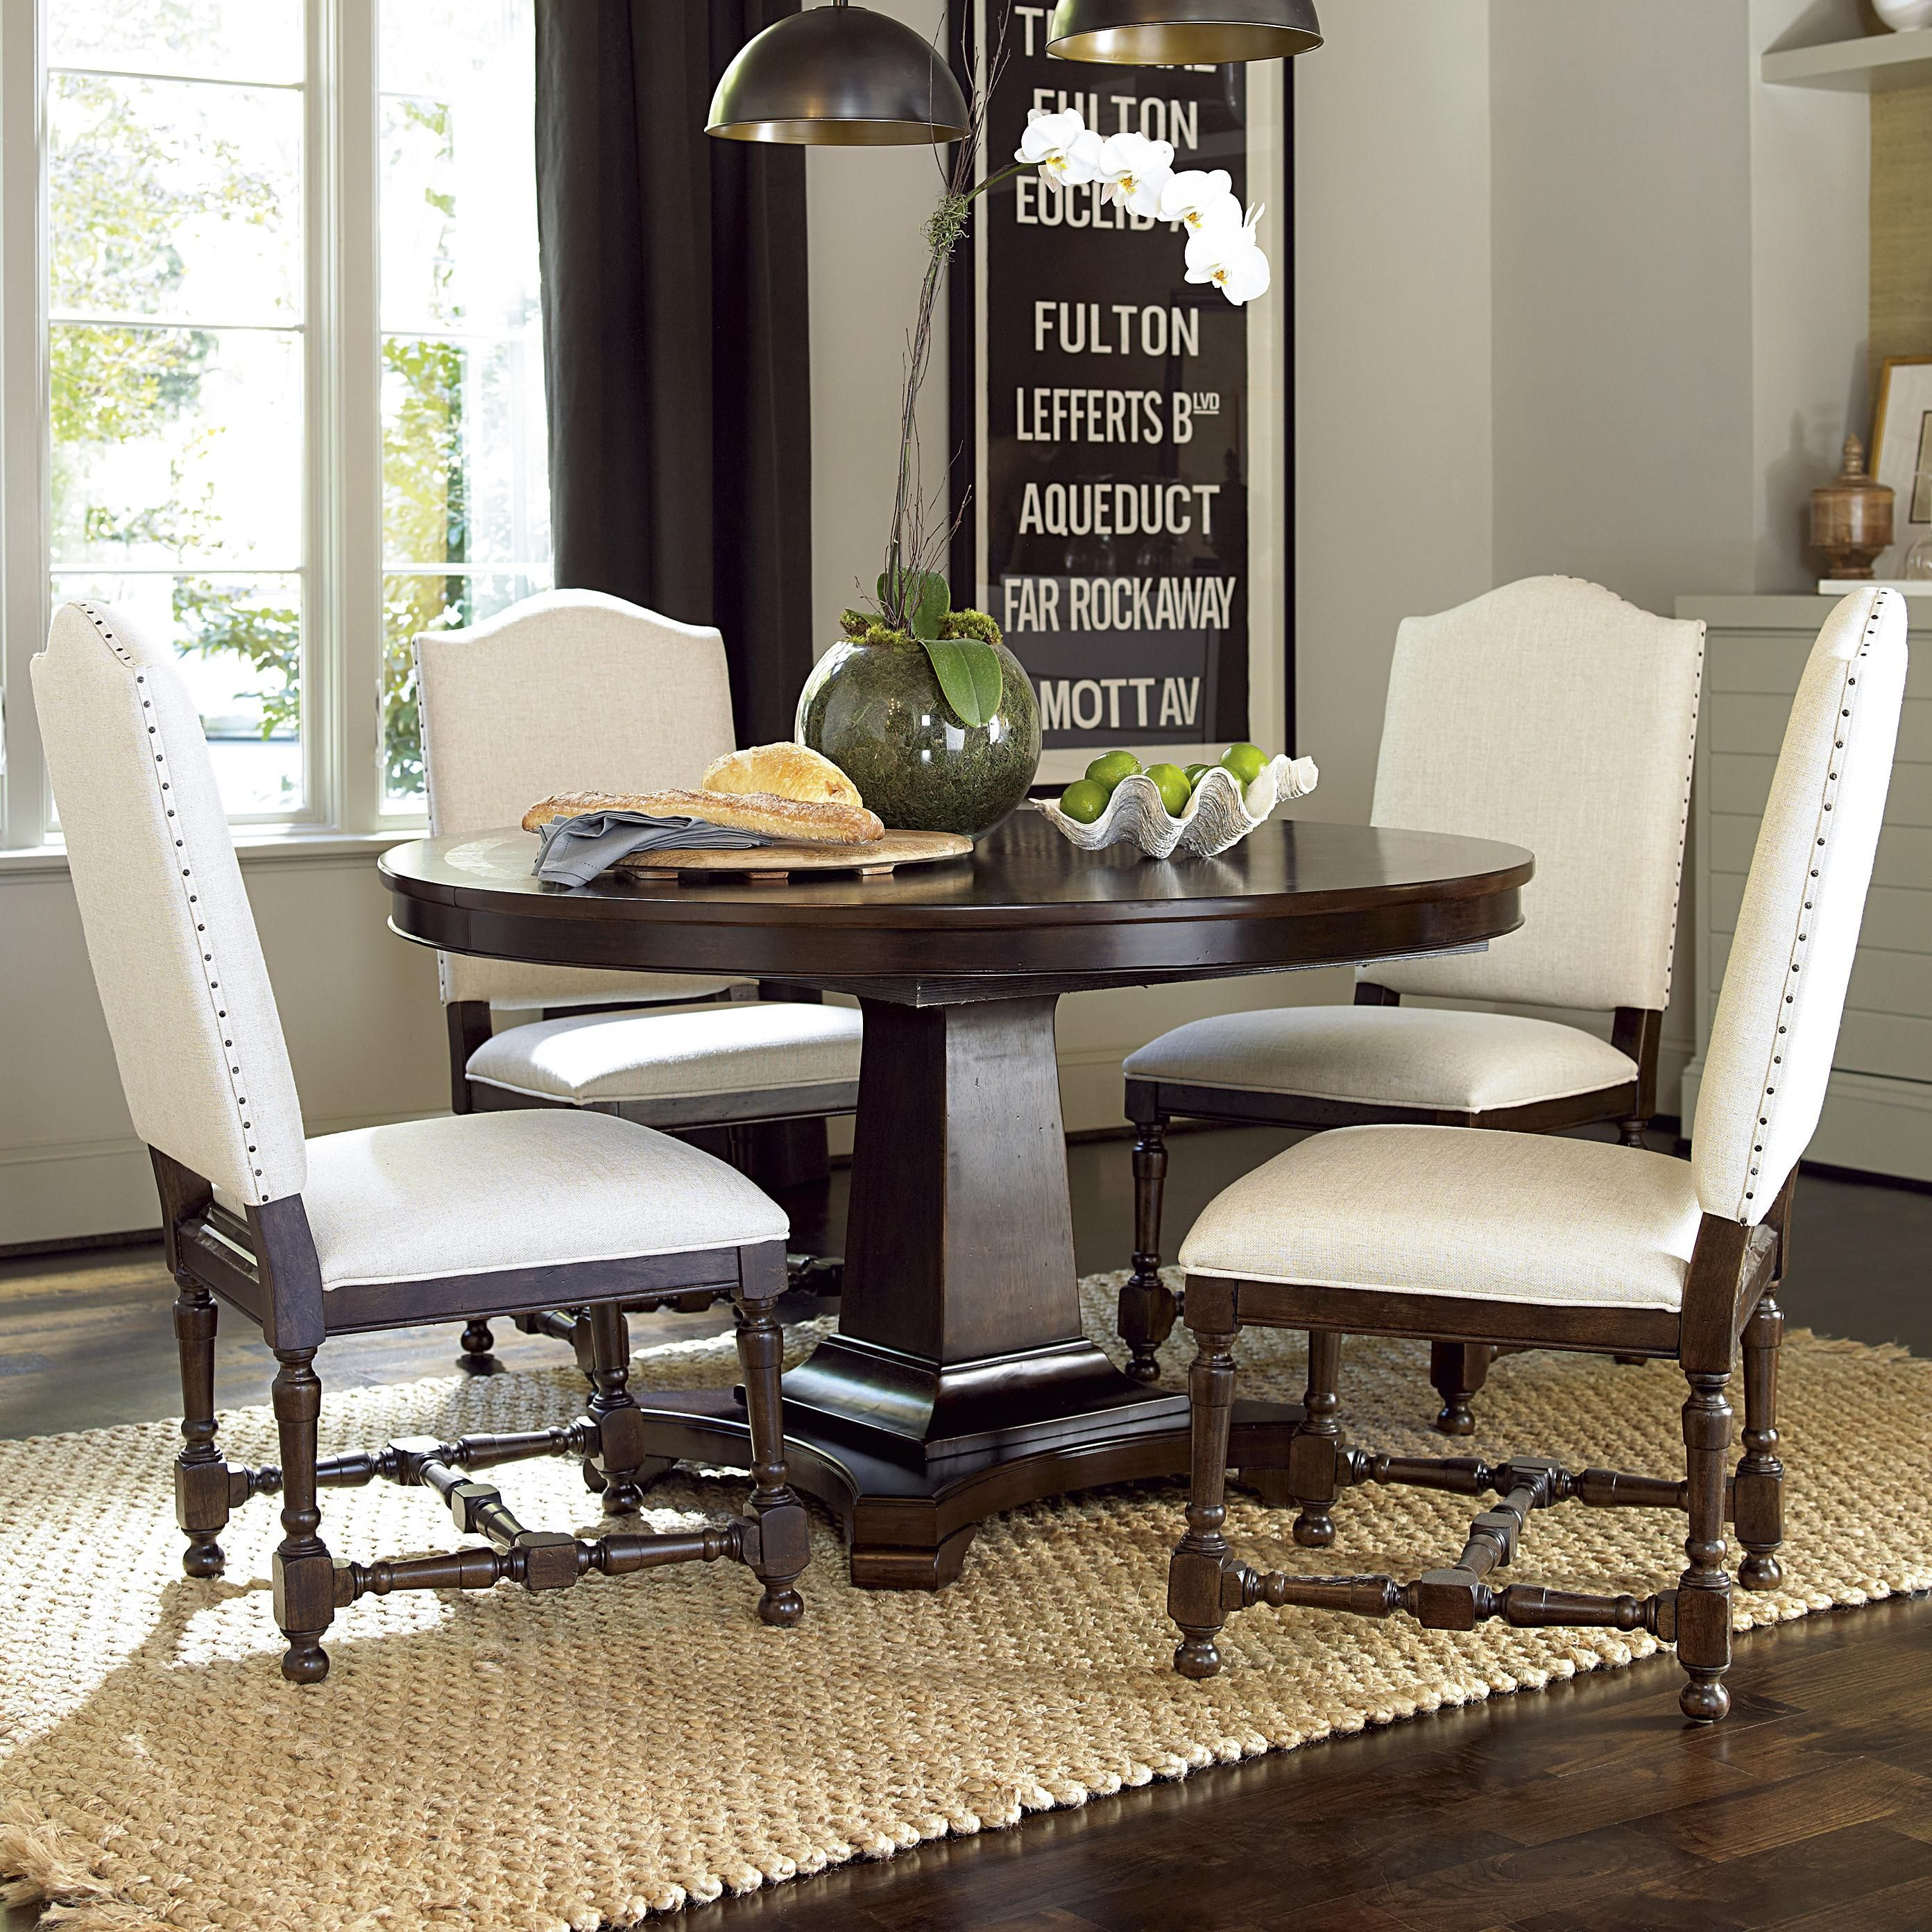 Proximity 5 Piece Dining Set by SDI7 shopping finds